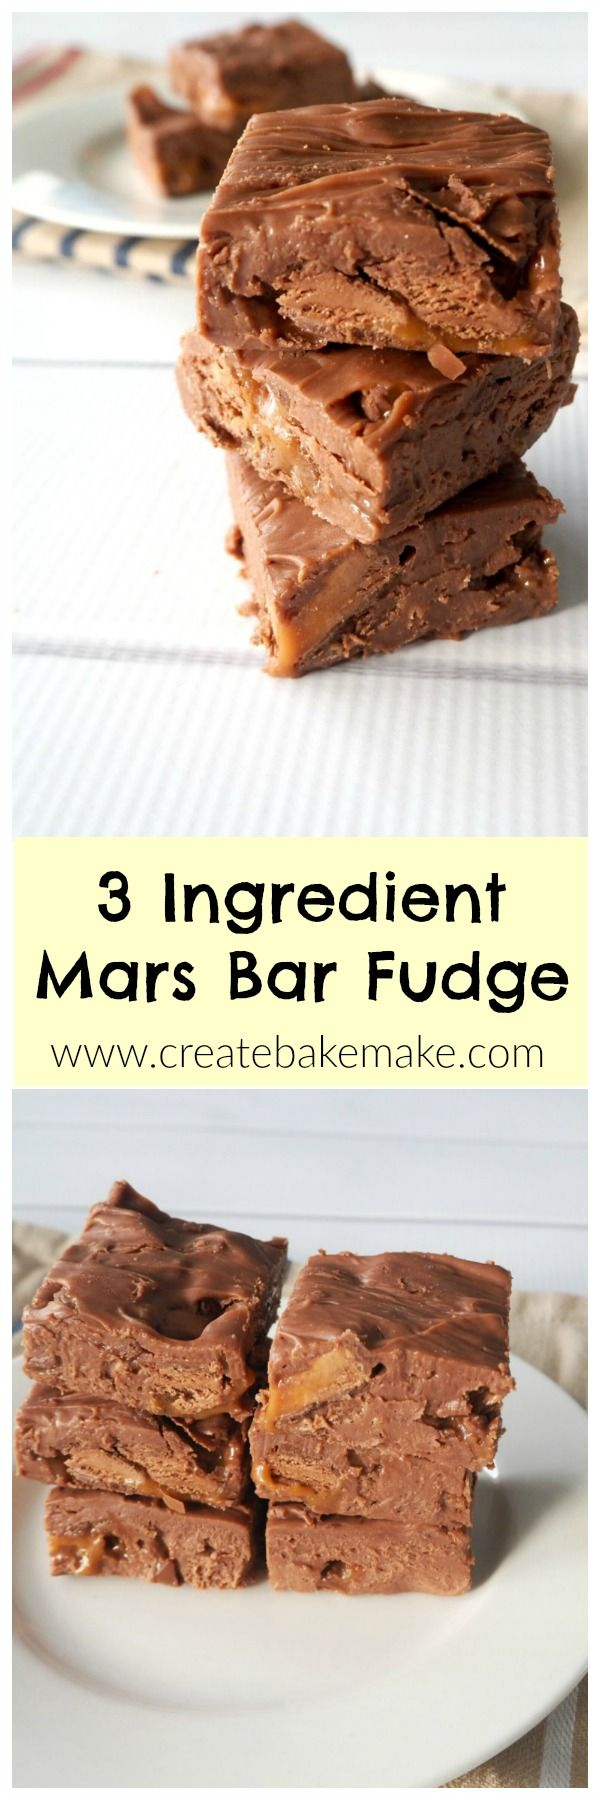 You only need THREE ingredients to make this delicious and oh so easy Mars Bar Fudge! Both regular and thermomix instructions included.